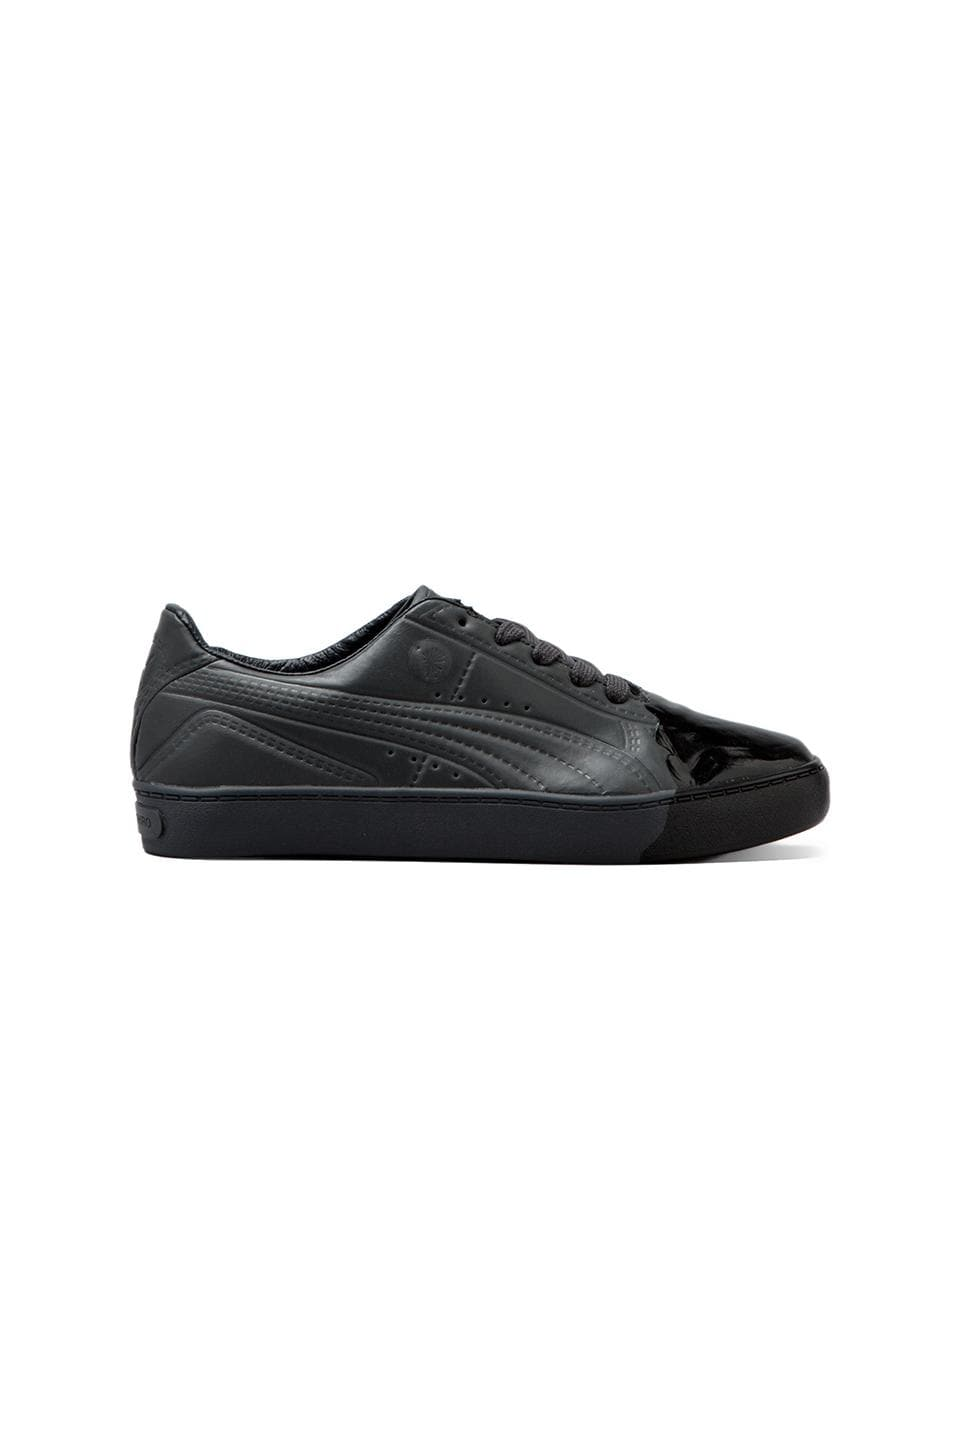 Puma by Mihara MY-70 in Black